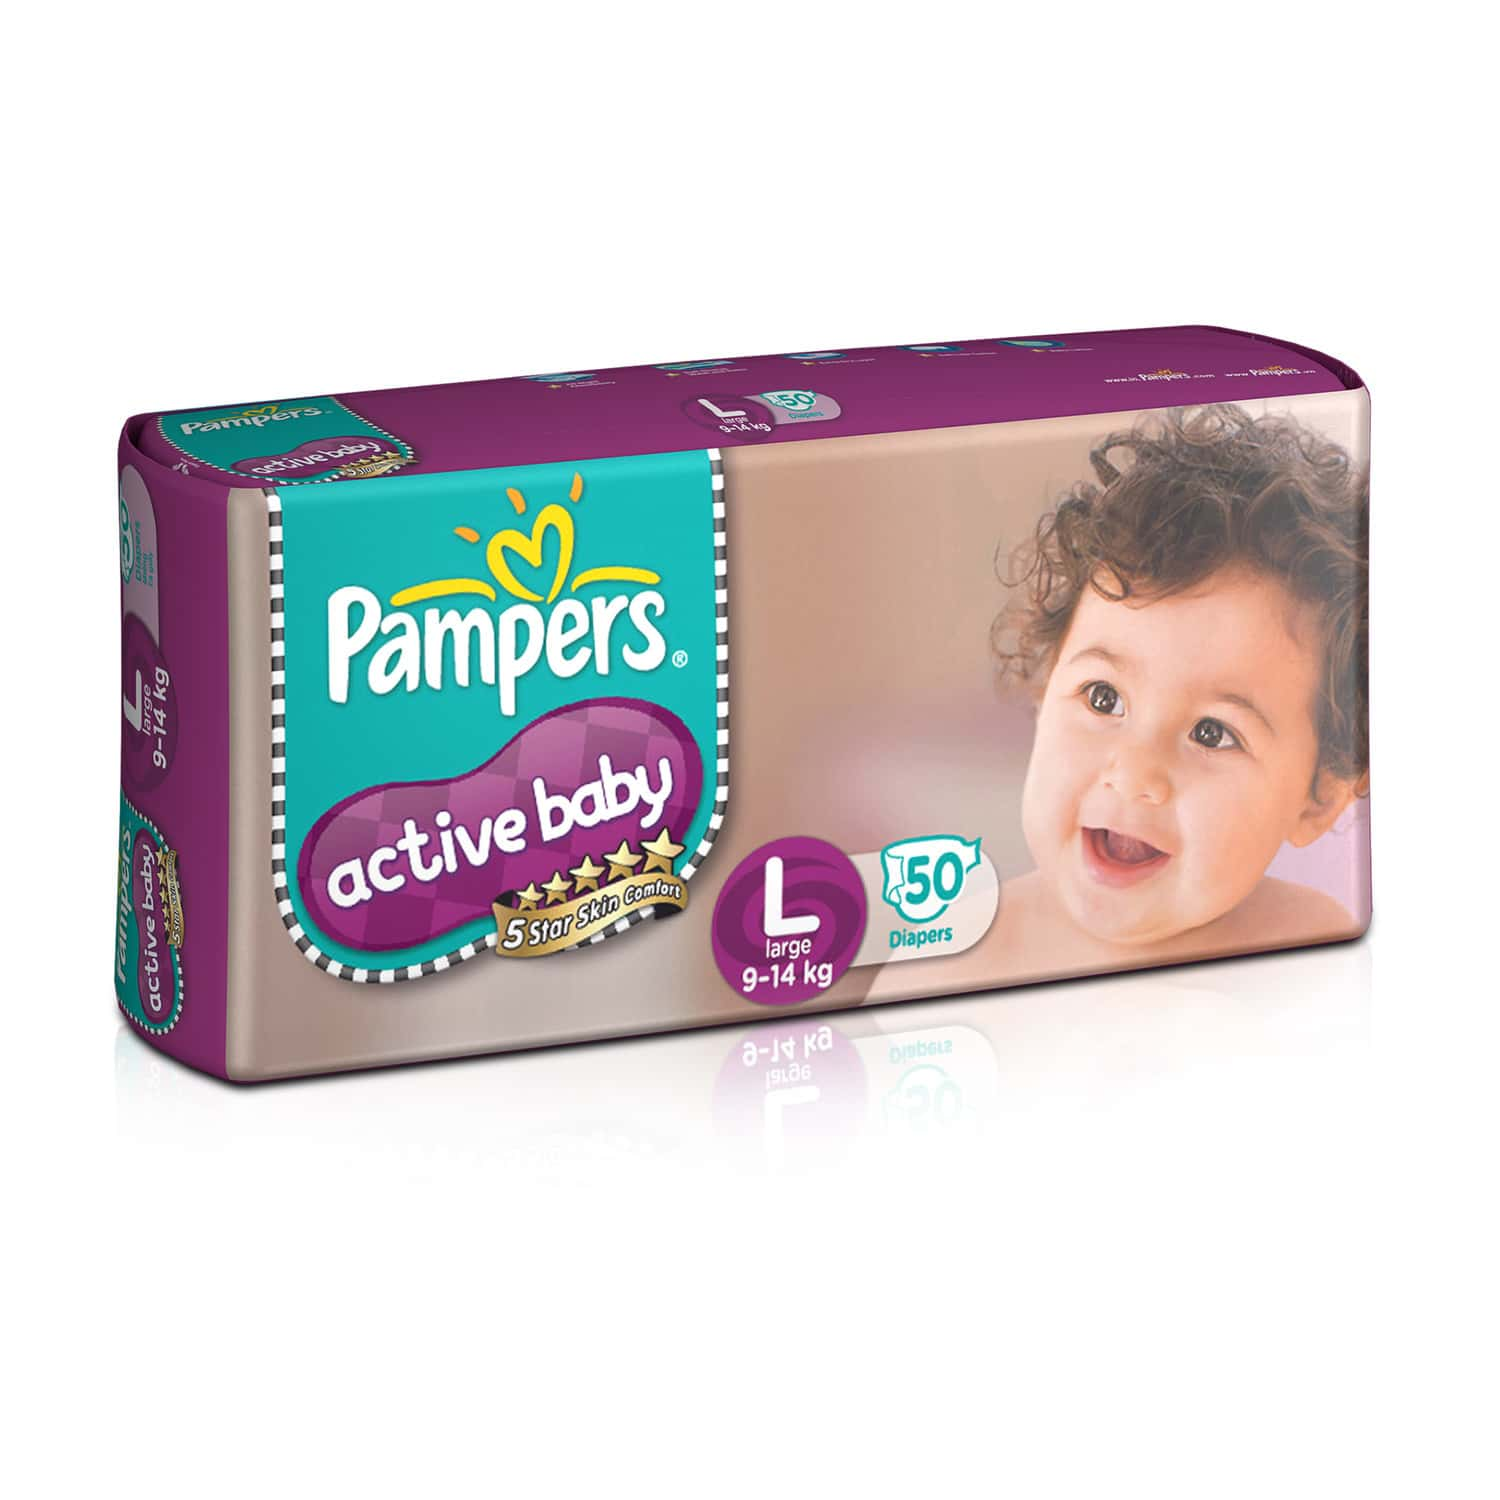 Pampers Active Baby Diapers Large Size 50 Pieces Pack